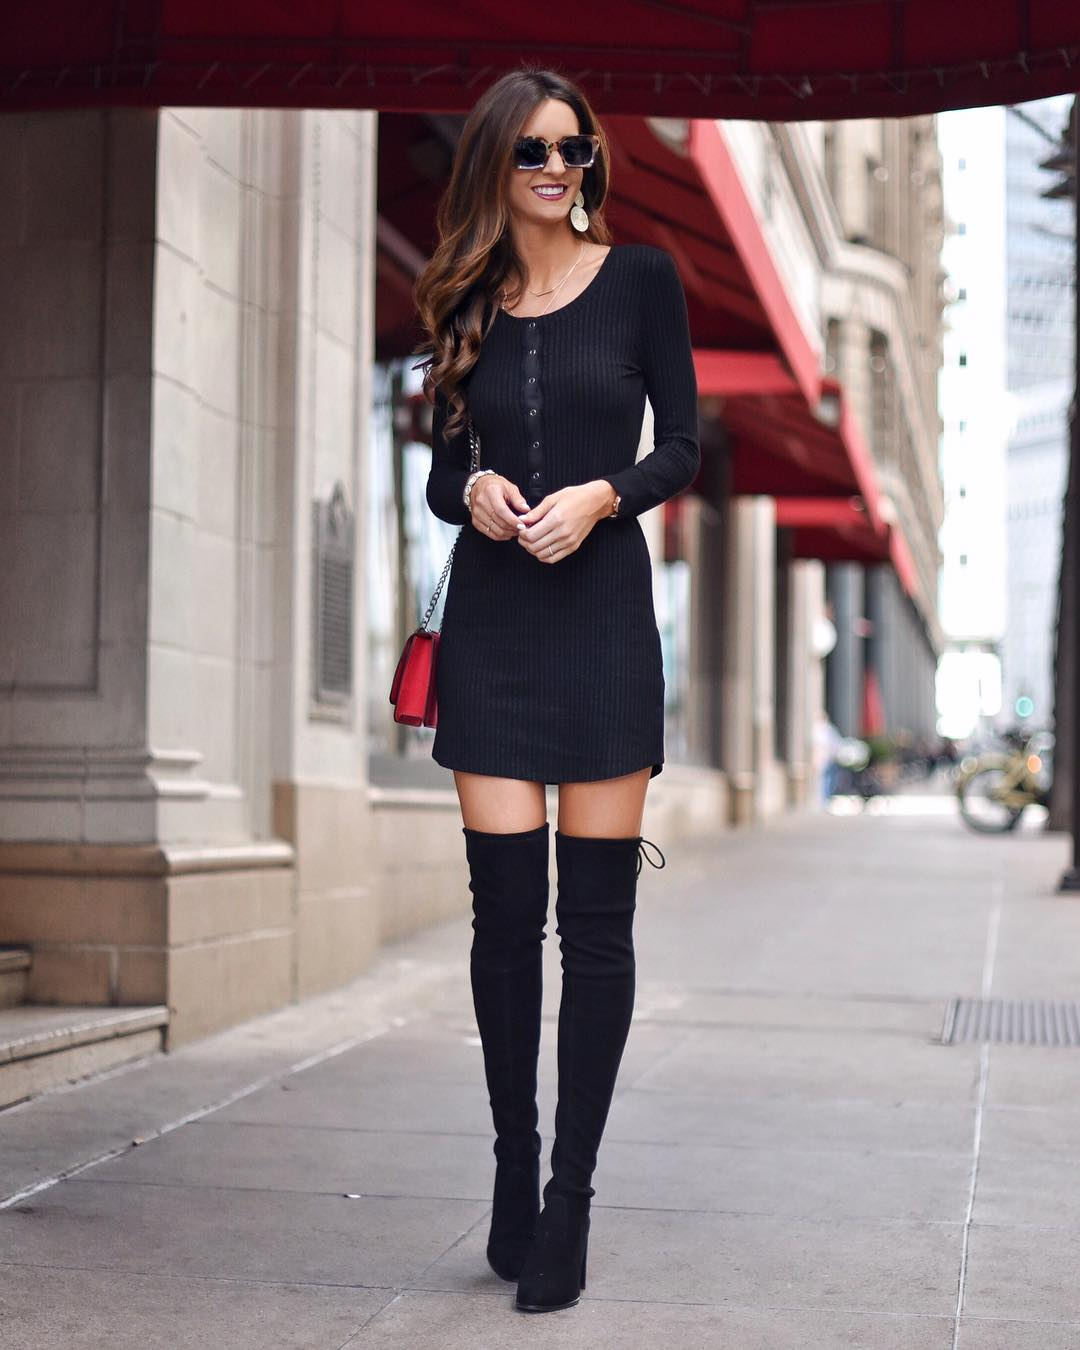 Simple black dress with a pop of red to makehellip